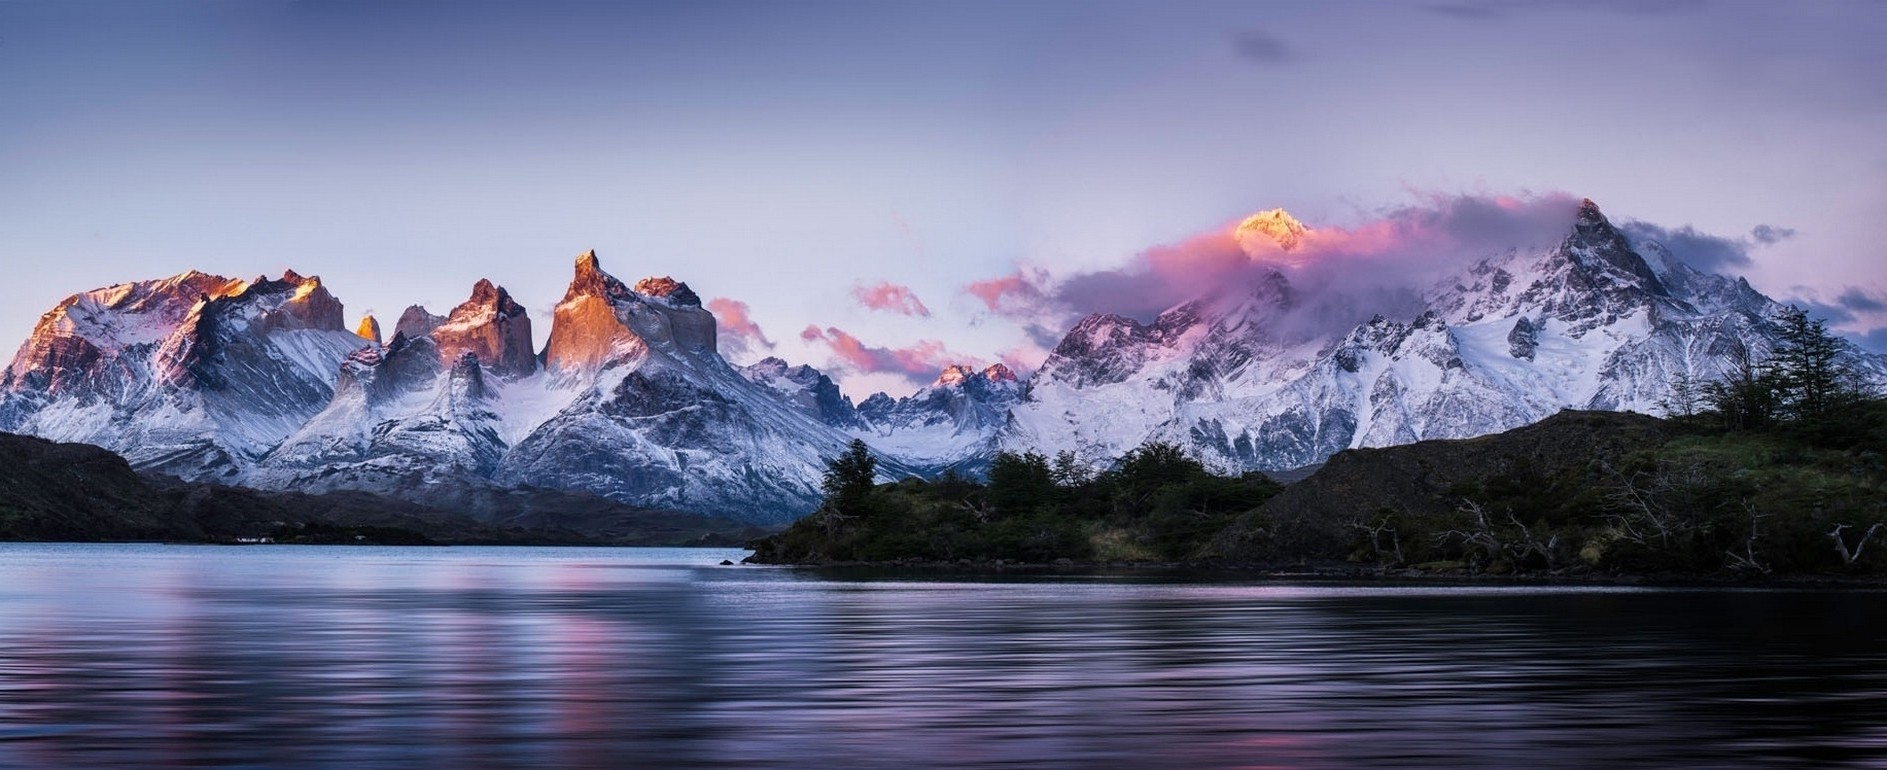 3d Wallpaper For Home Screen Panoramas Torres Del Paine Patagonia Chile Mountain